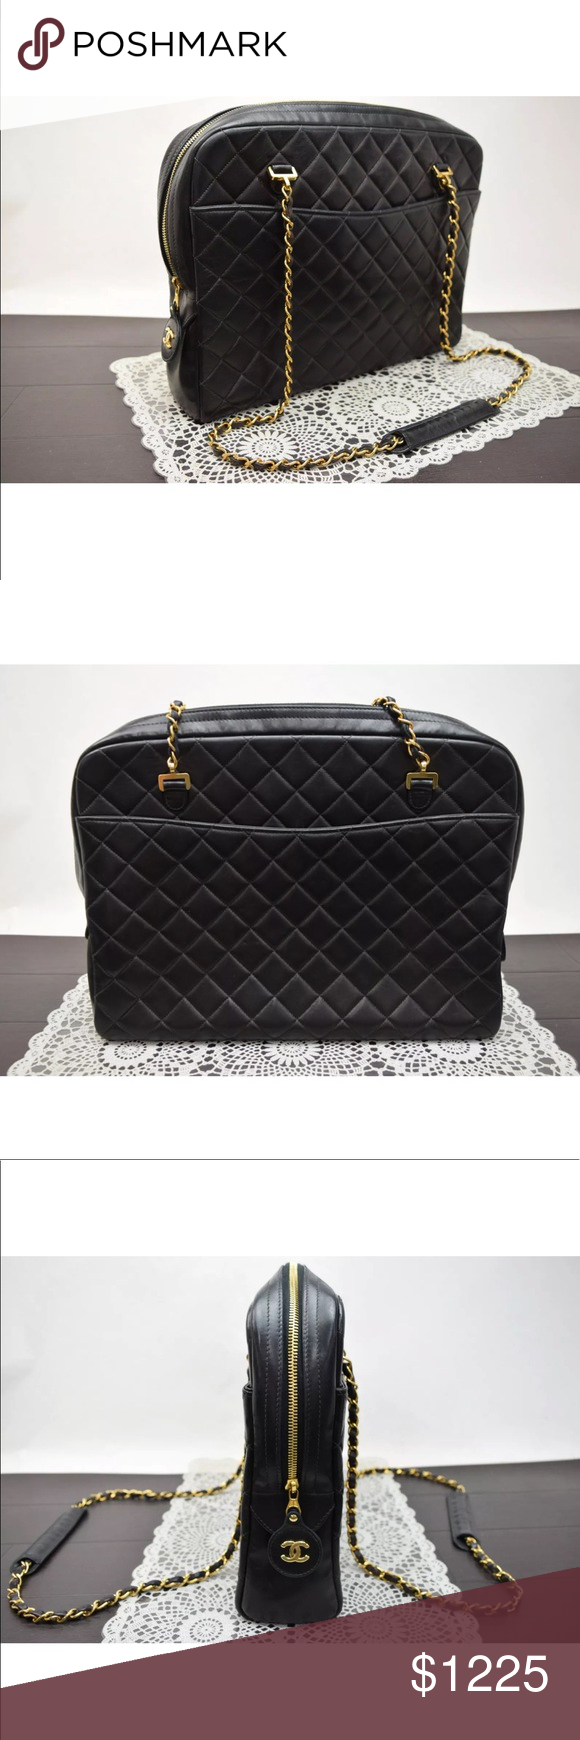 0e614ae51fa5 Authentic CHANEL quilted Lambskin tote Vintage Double Chain Quilted black  Lambskin Shoulder Bag made in France